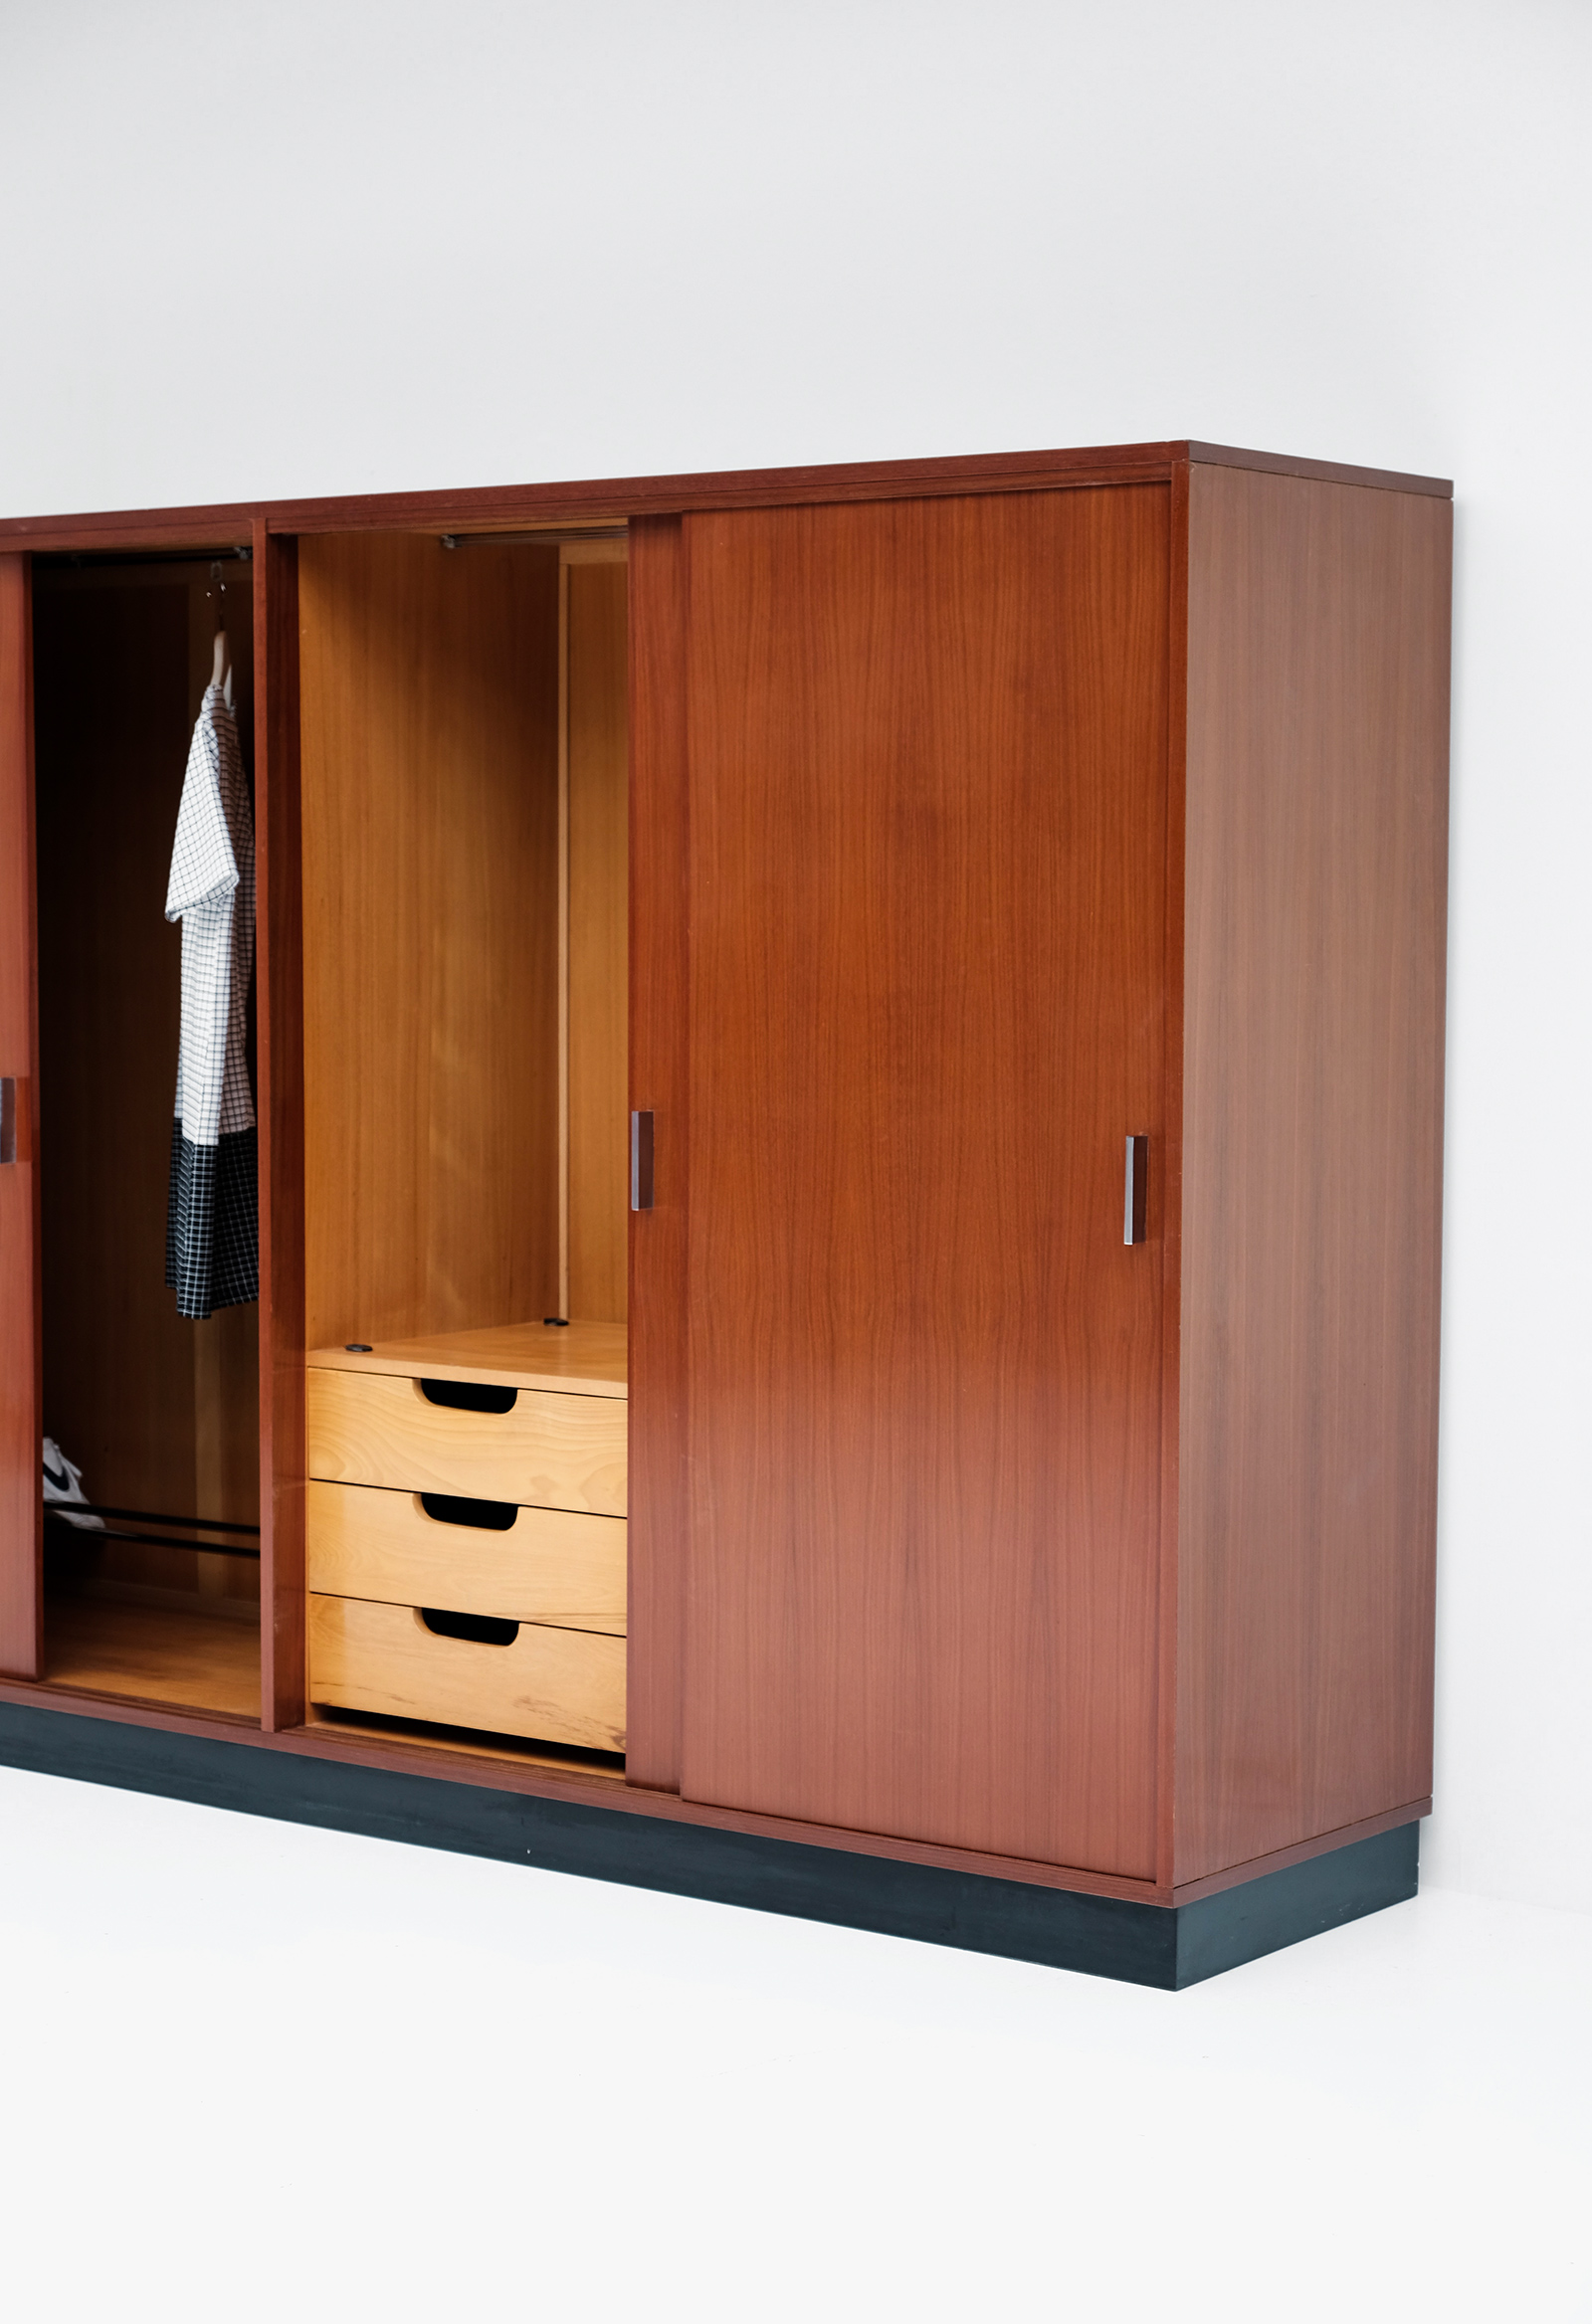 Alfred Hendrickx Wardrobe with Sliding Doorsimage 10